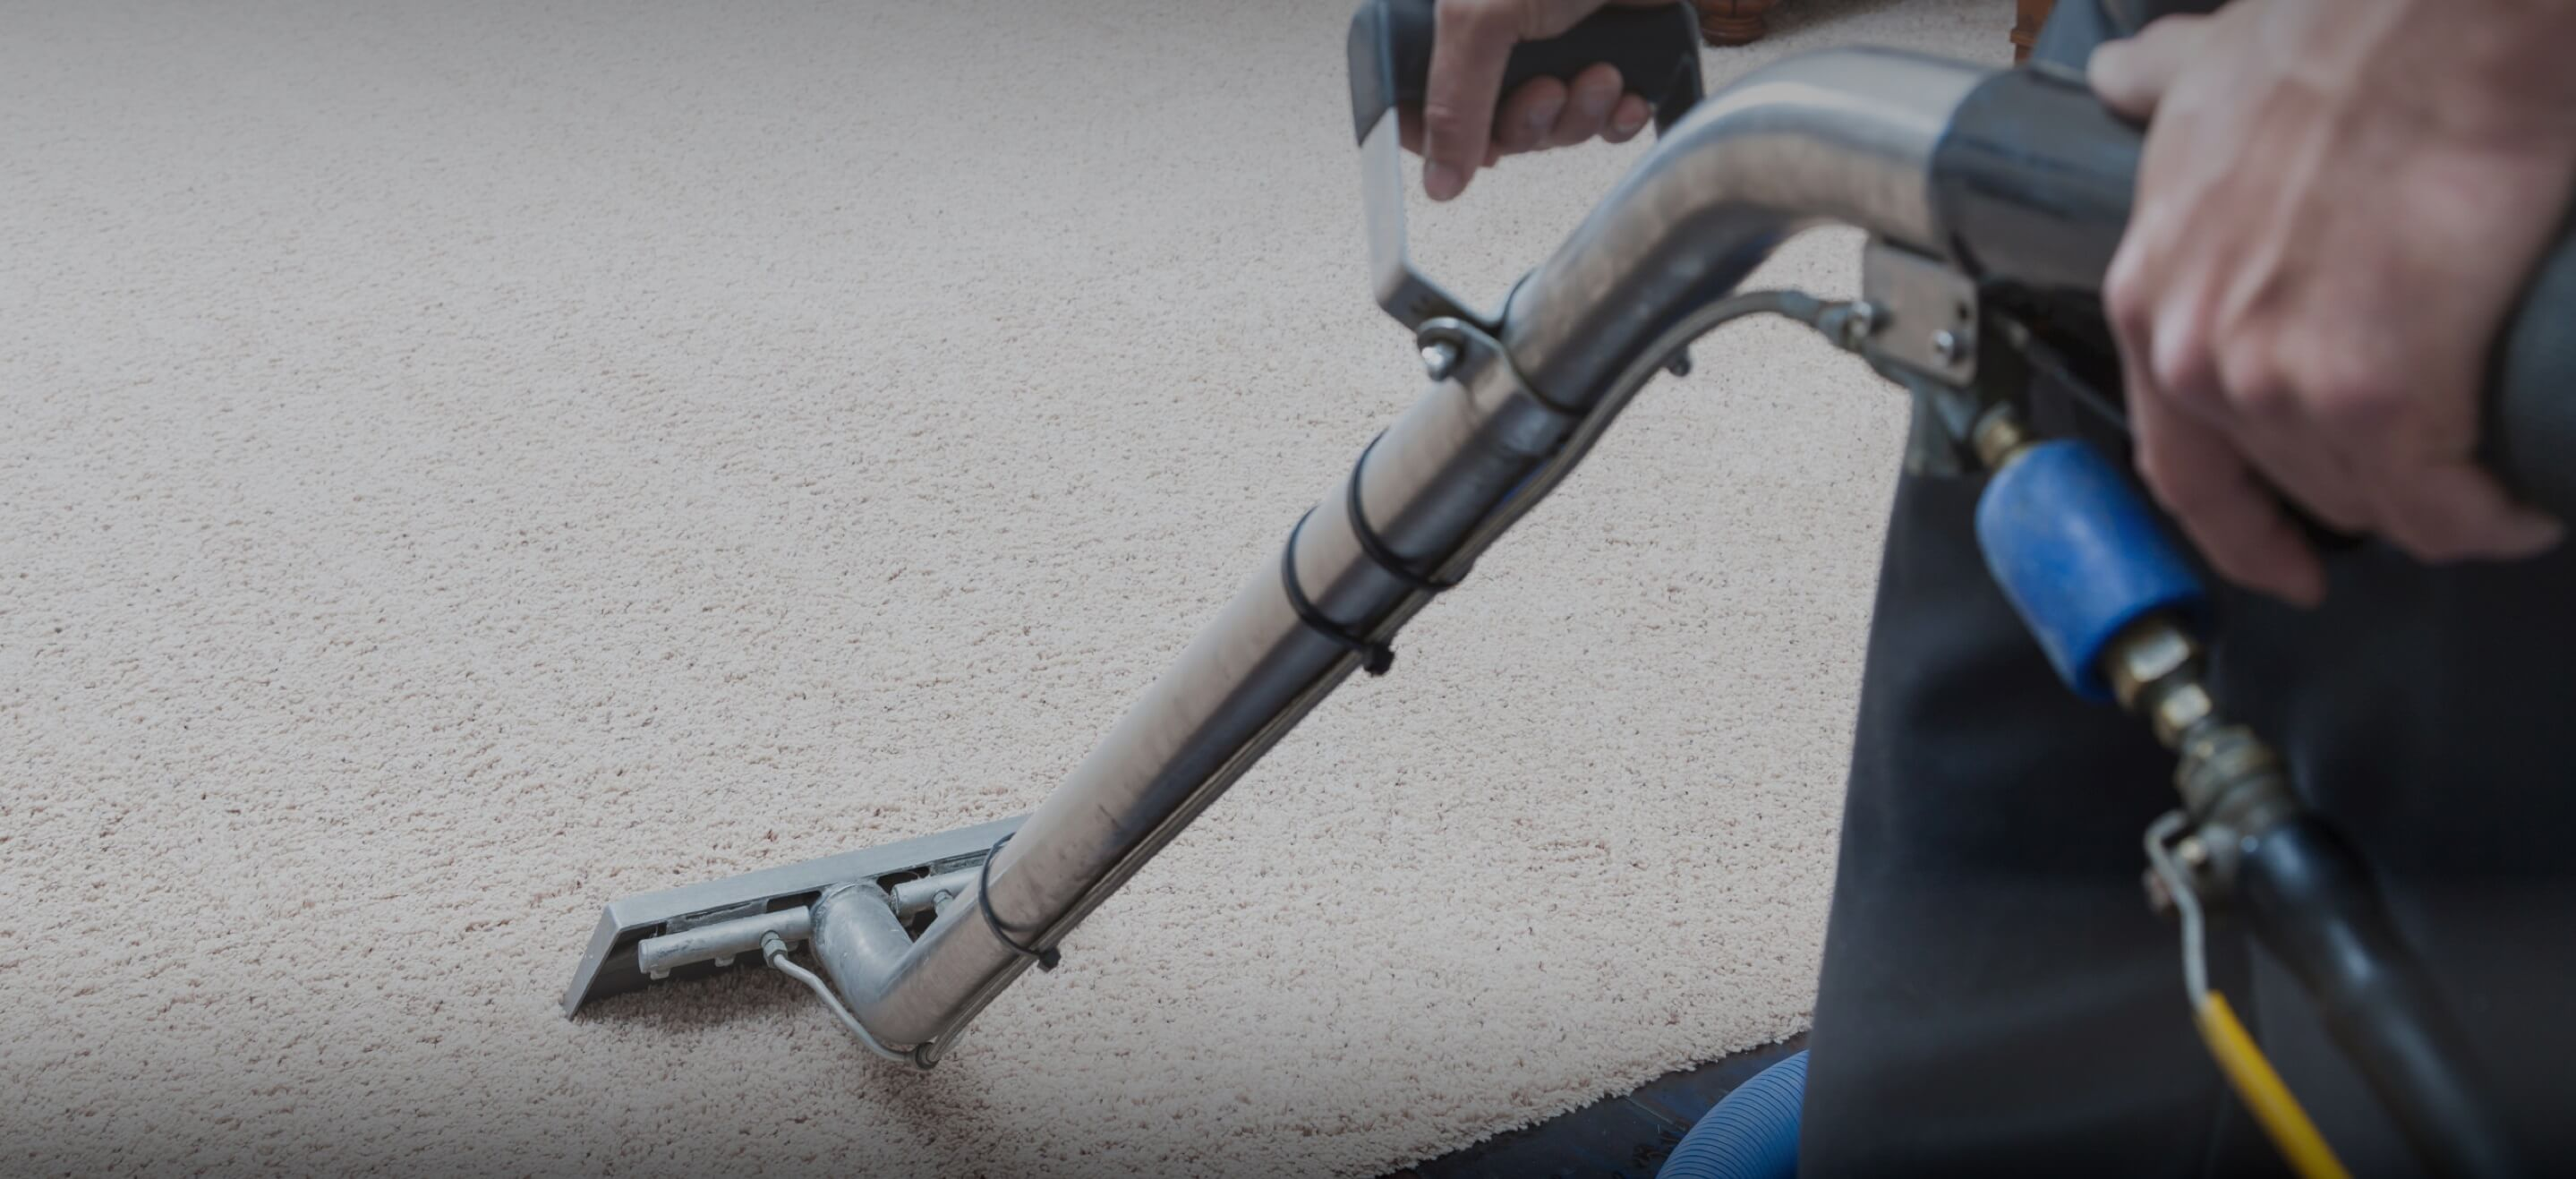 Carpet Cleaning In Las Vegas | Upholstery Cleaning | Rug Cleaning |  Complete Carpet Cleaning   Las Vegas, NV